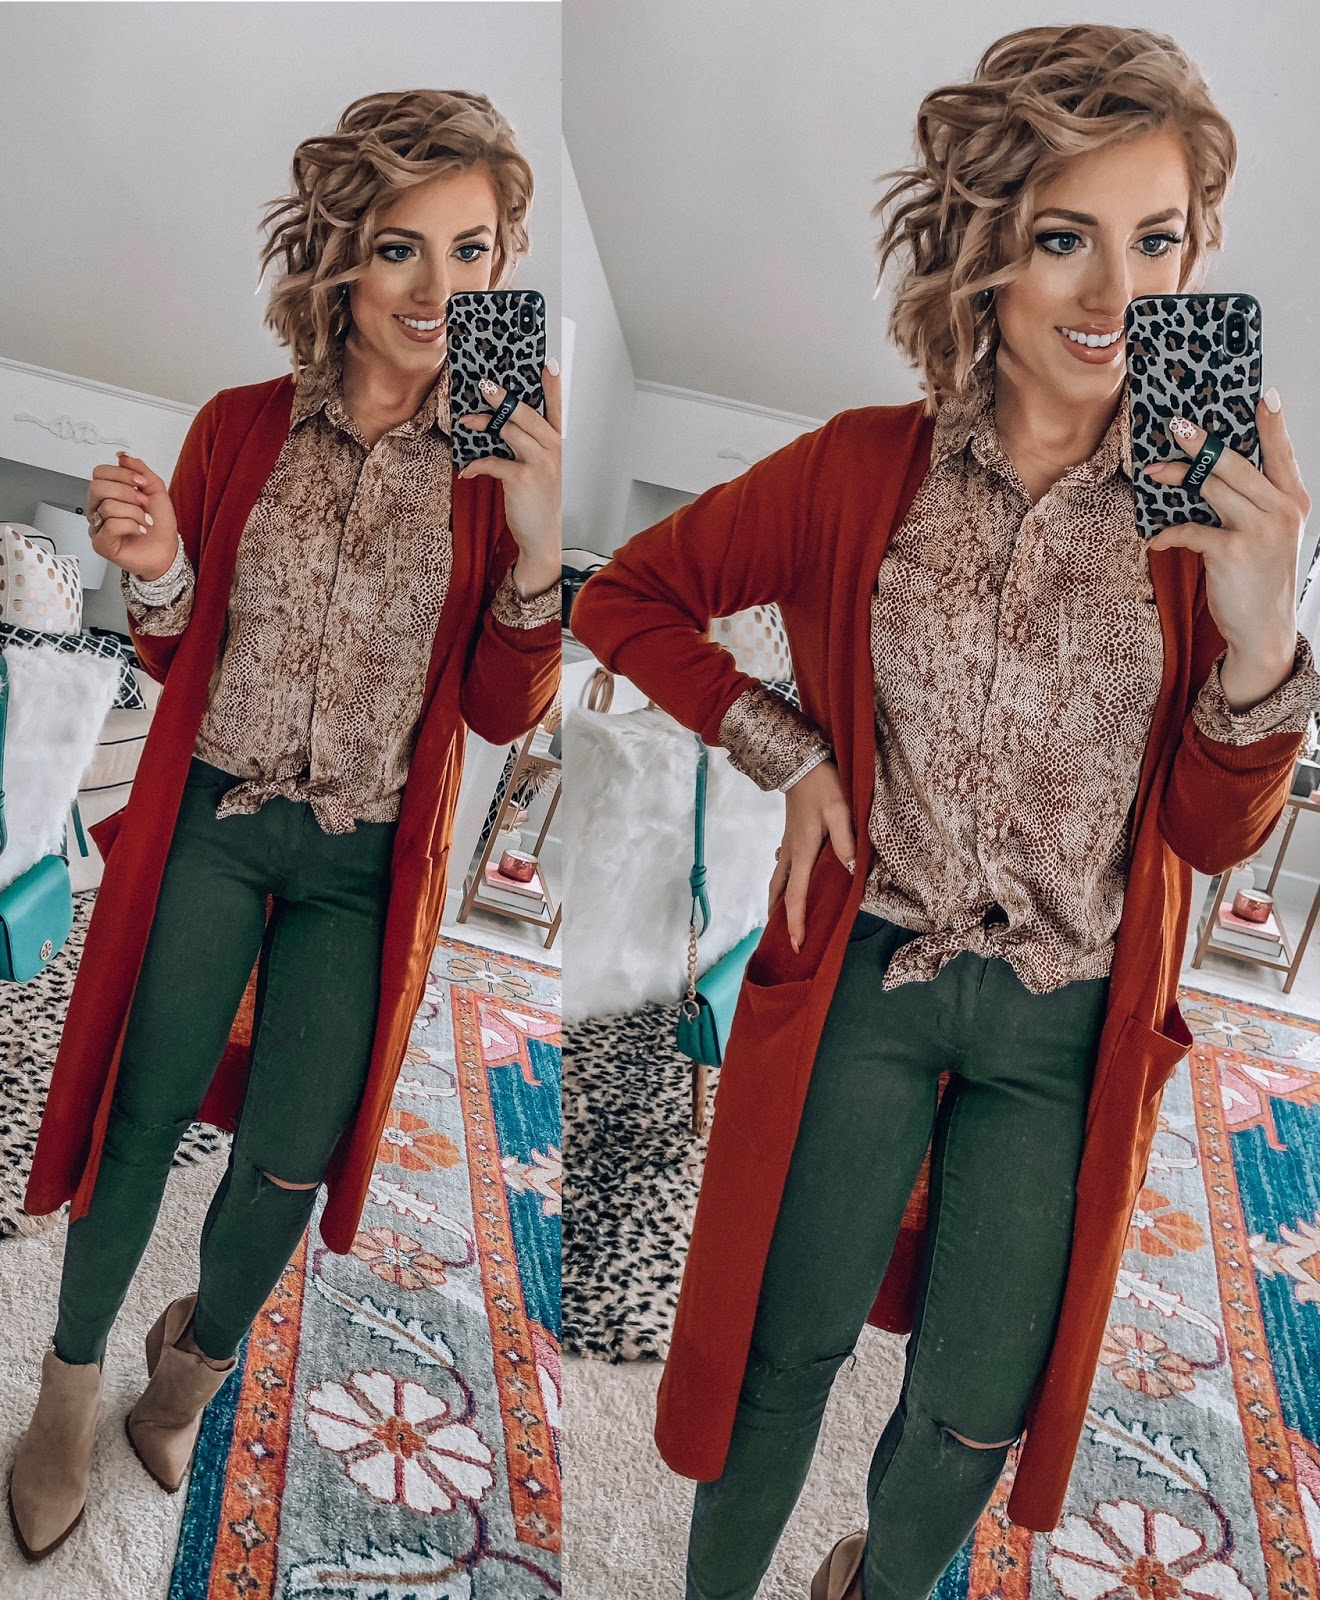 Target Fall Finds: Part One - Under $20 Snake Button Up Shirt, $20 Olive Green Jeggings, Under $30 Rust Cardigan - Something Delightful Blog